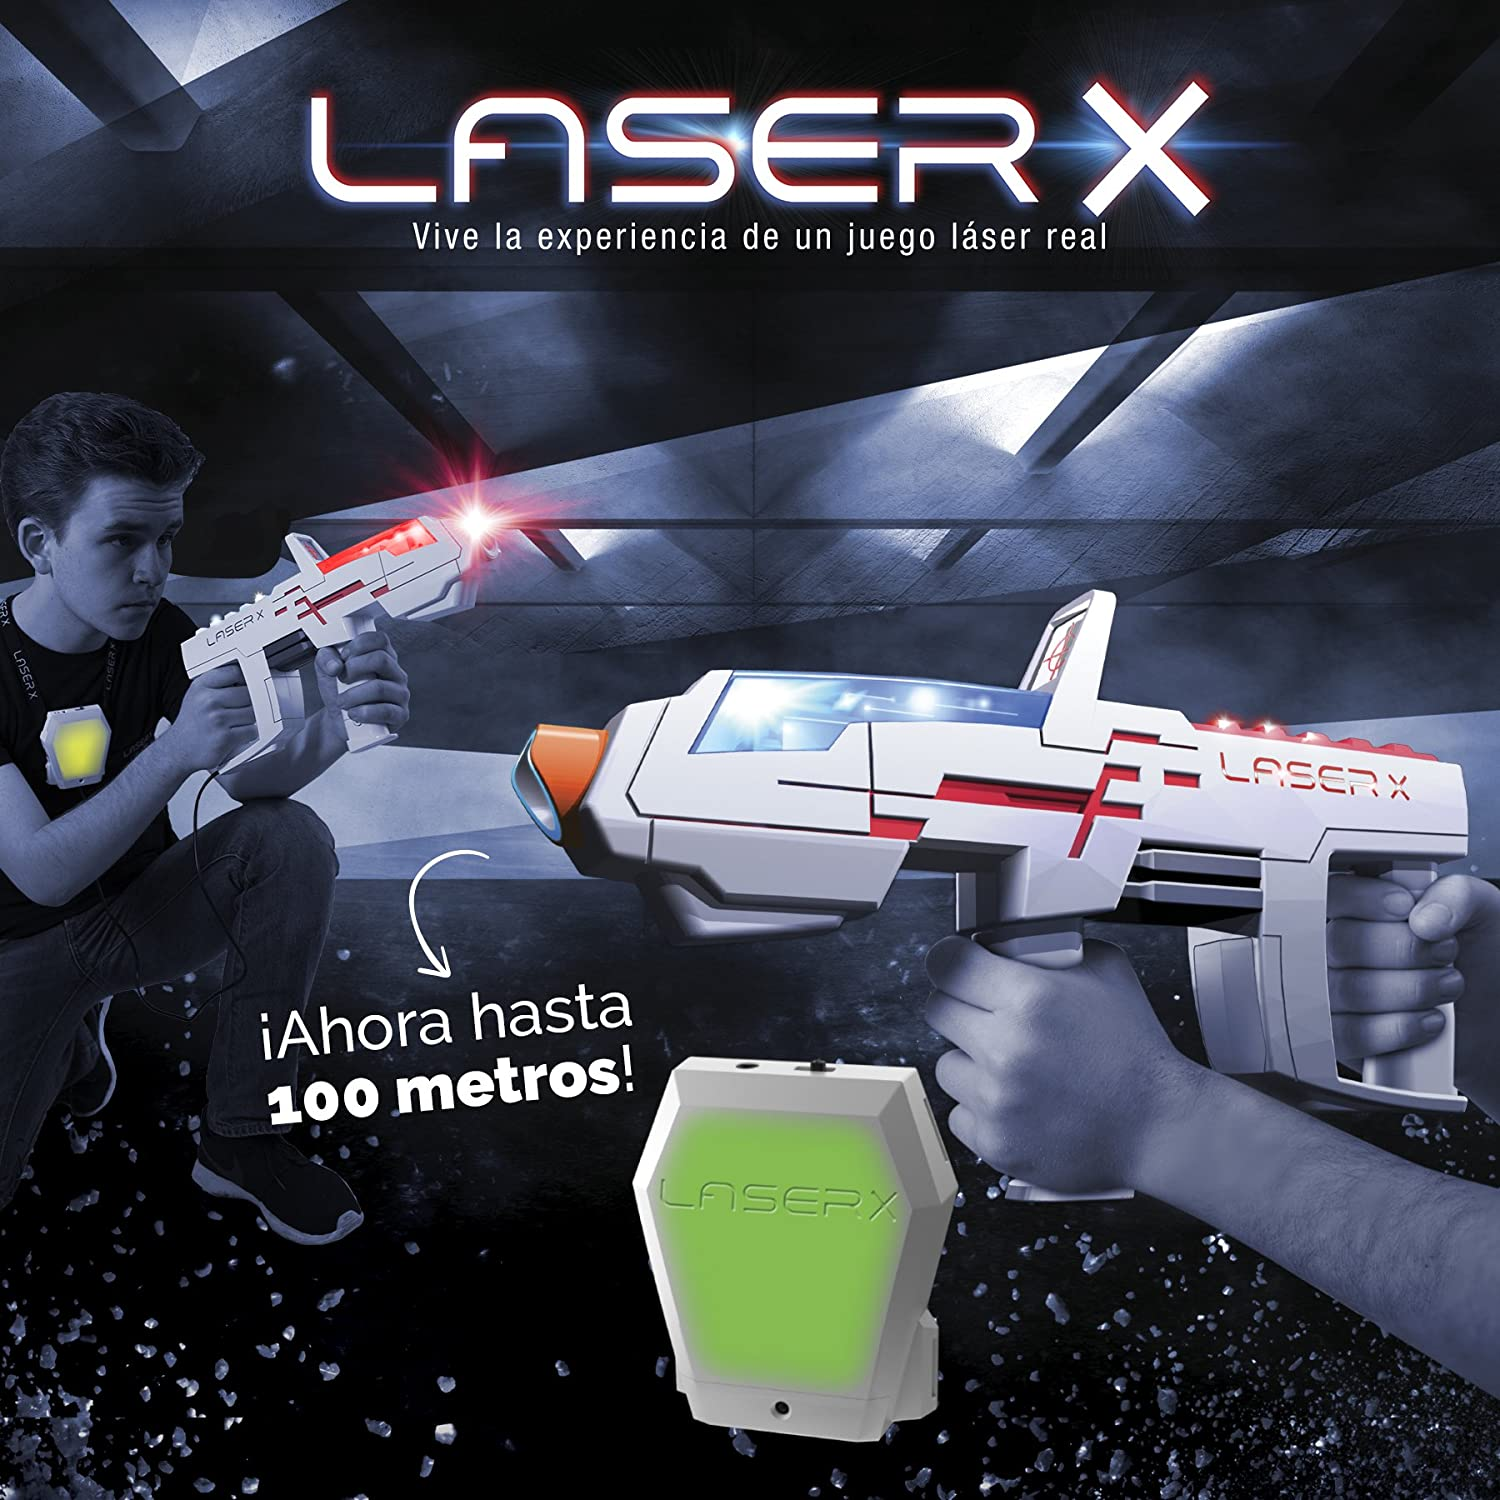 Laser X Pistola Largo Alcance (Cife 98139), Color Blanco y Gris Spain